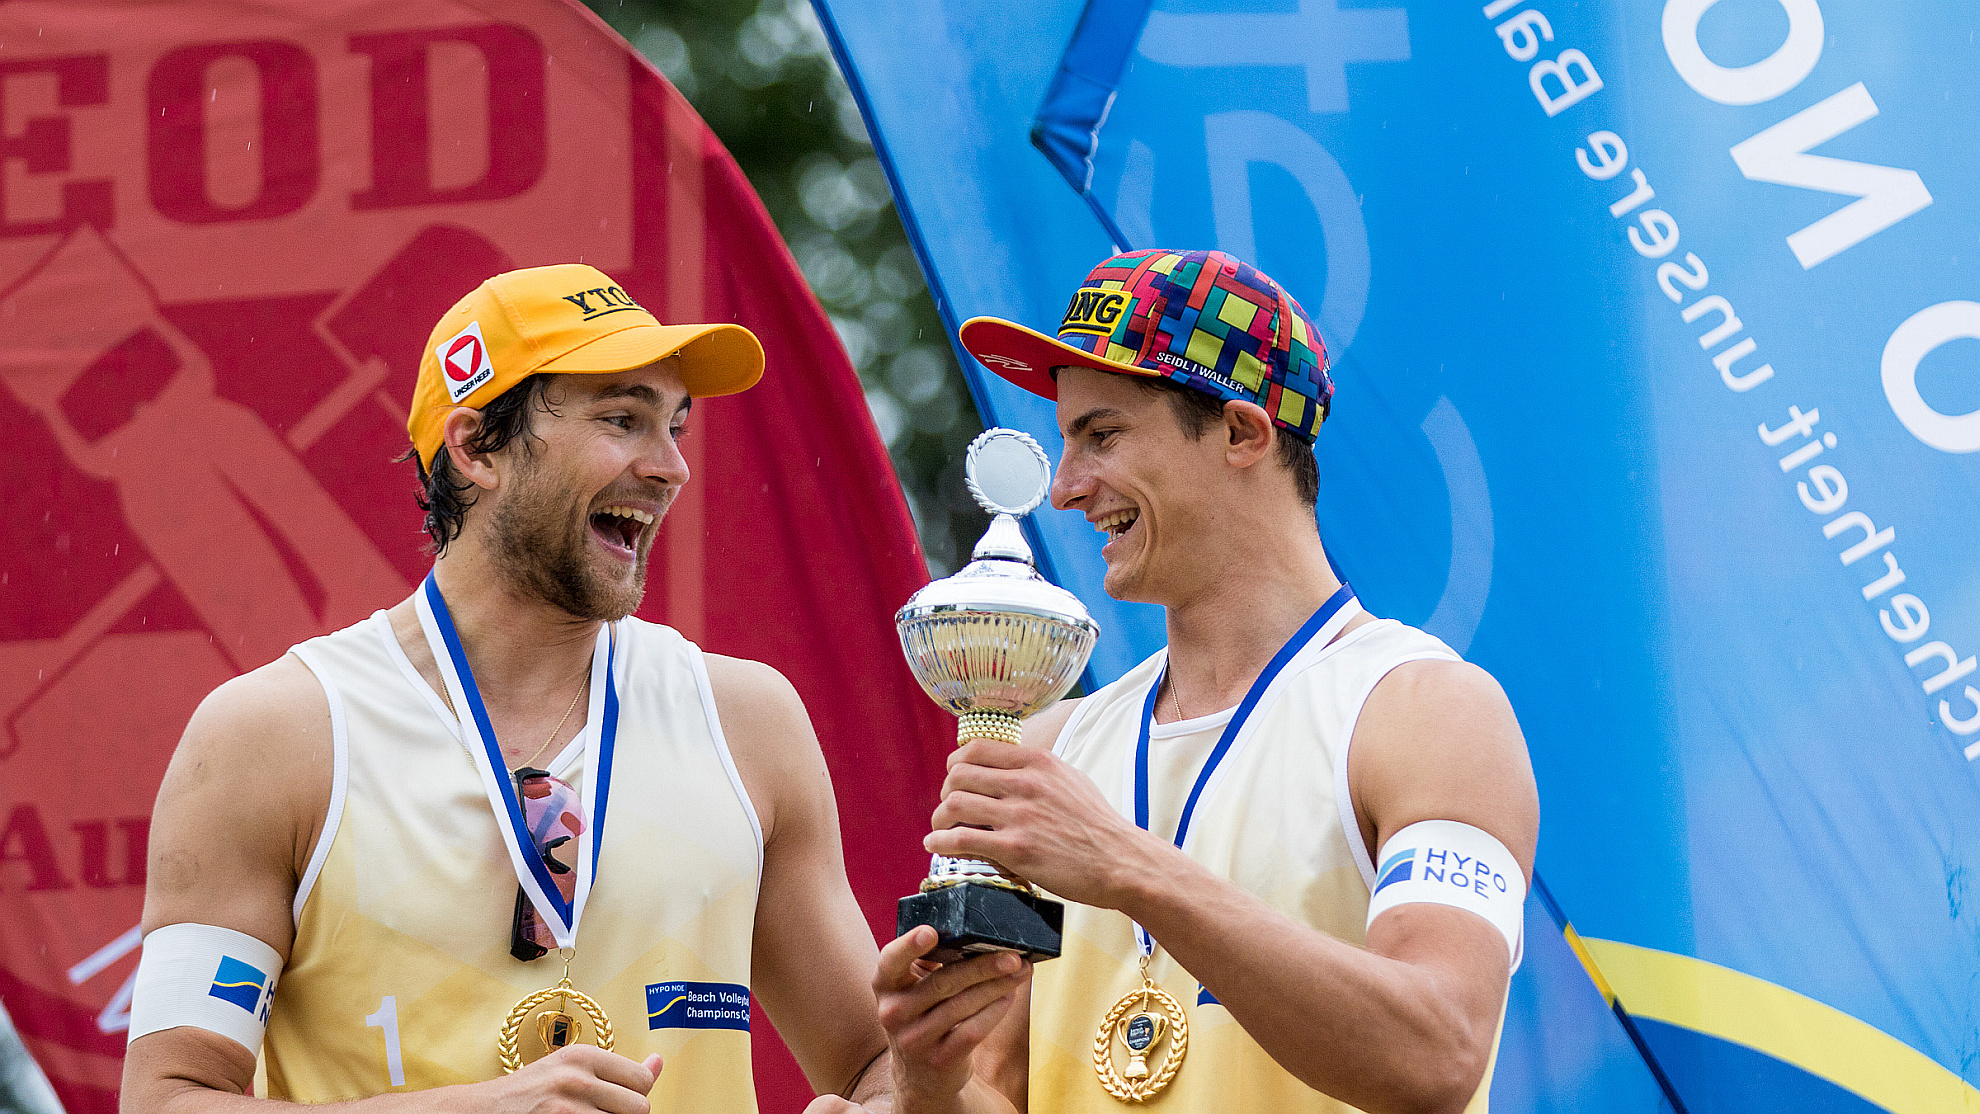 FOTO © HYPO NOE Champions Cup/Gert Nepel